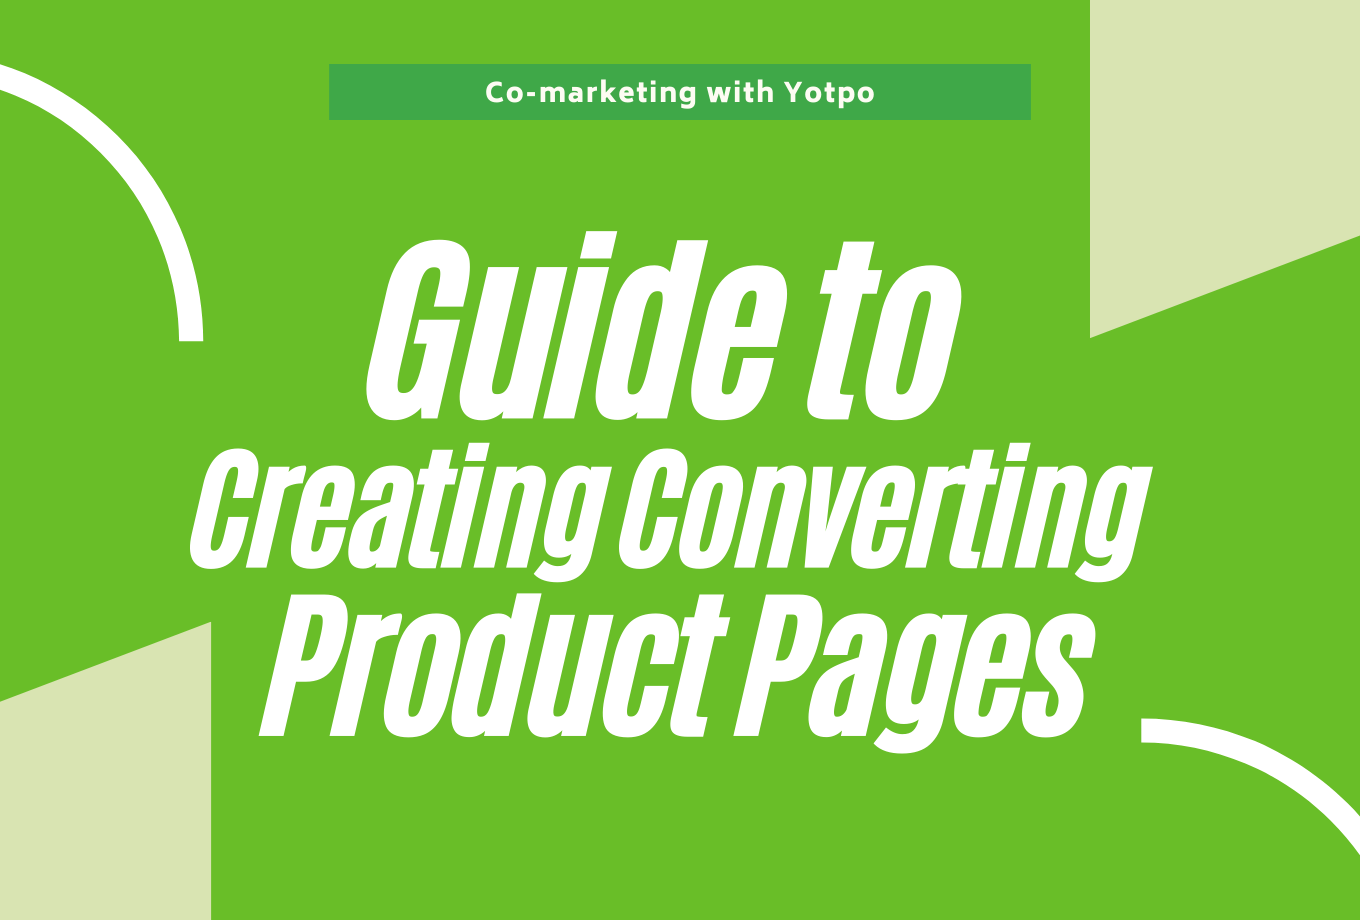 Guide to Creating Converting Product Pages - Co-marketing with Yotpo